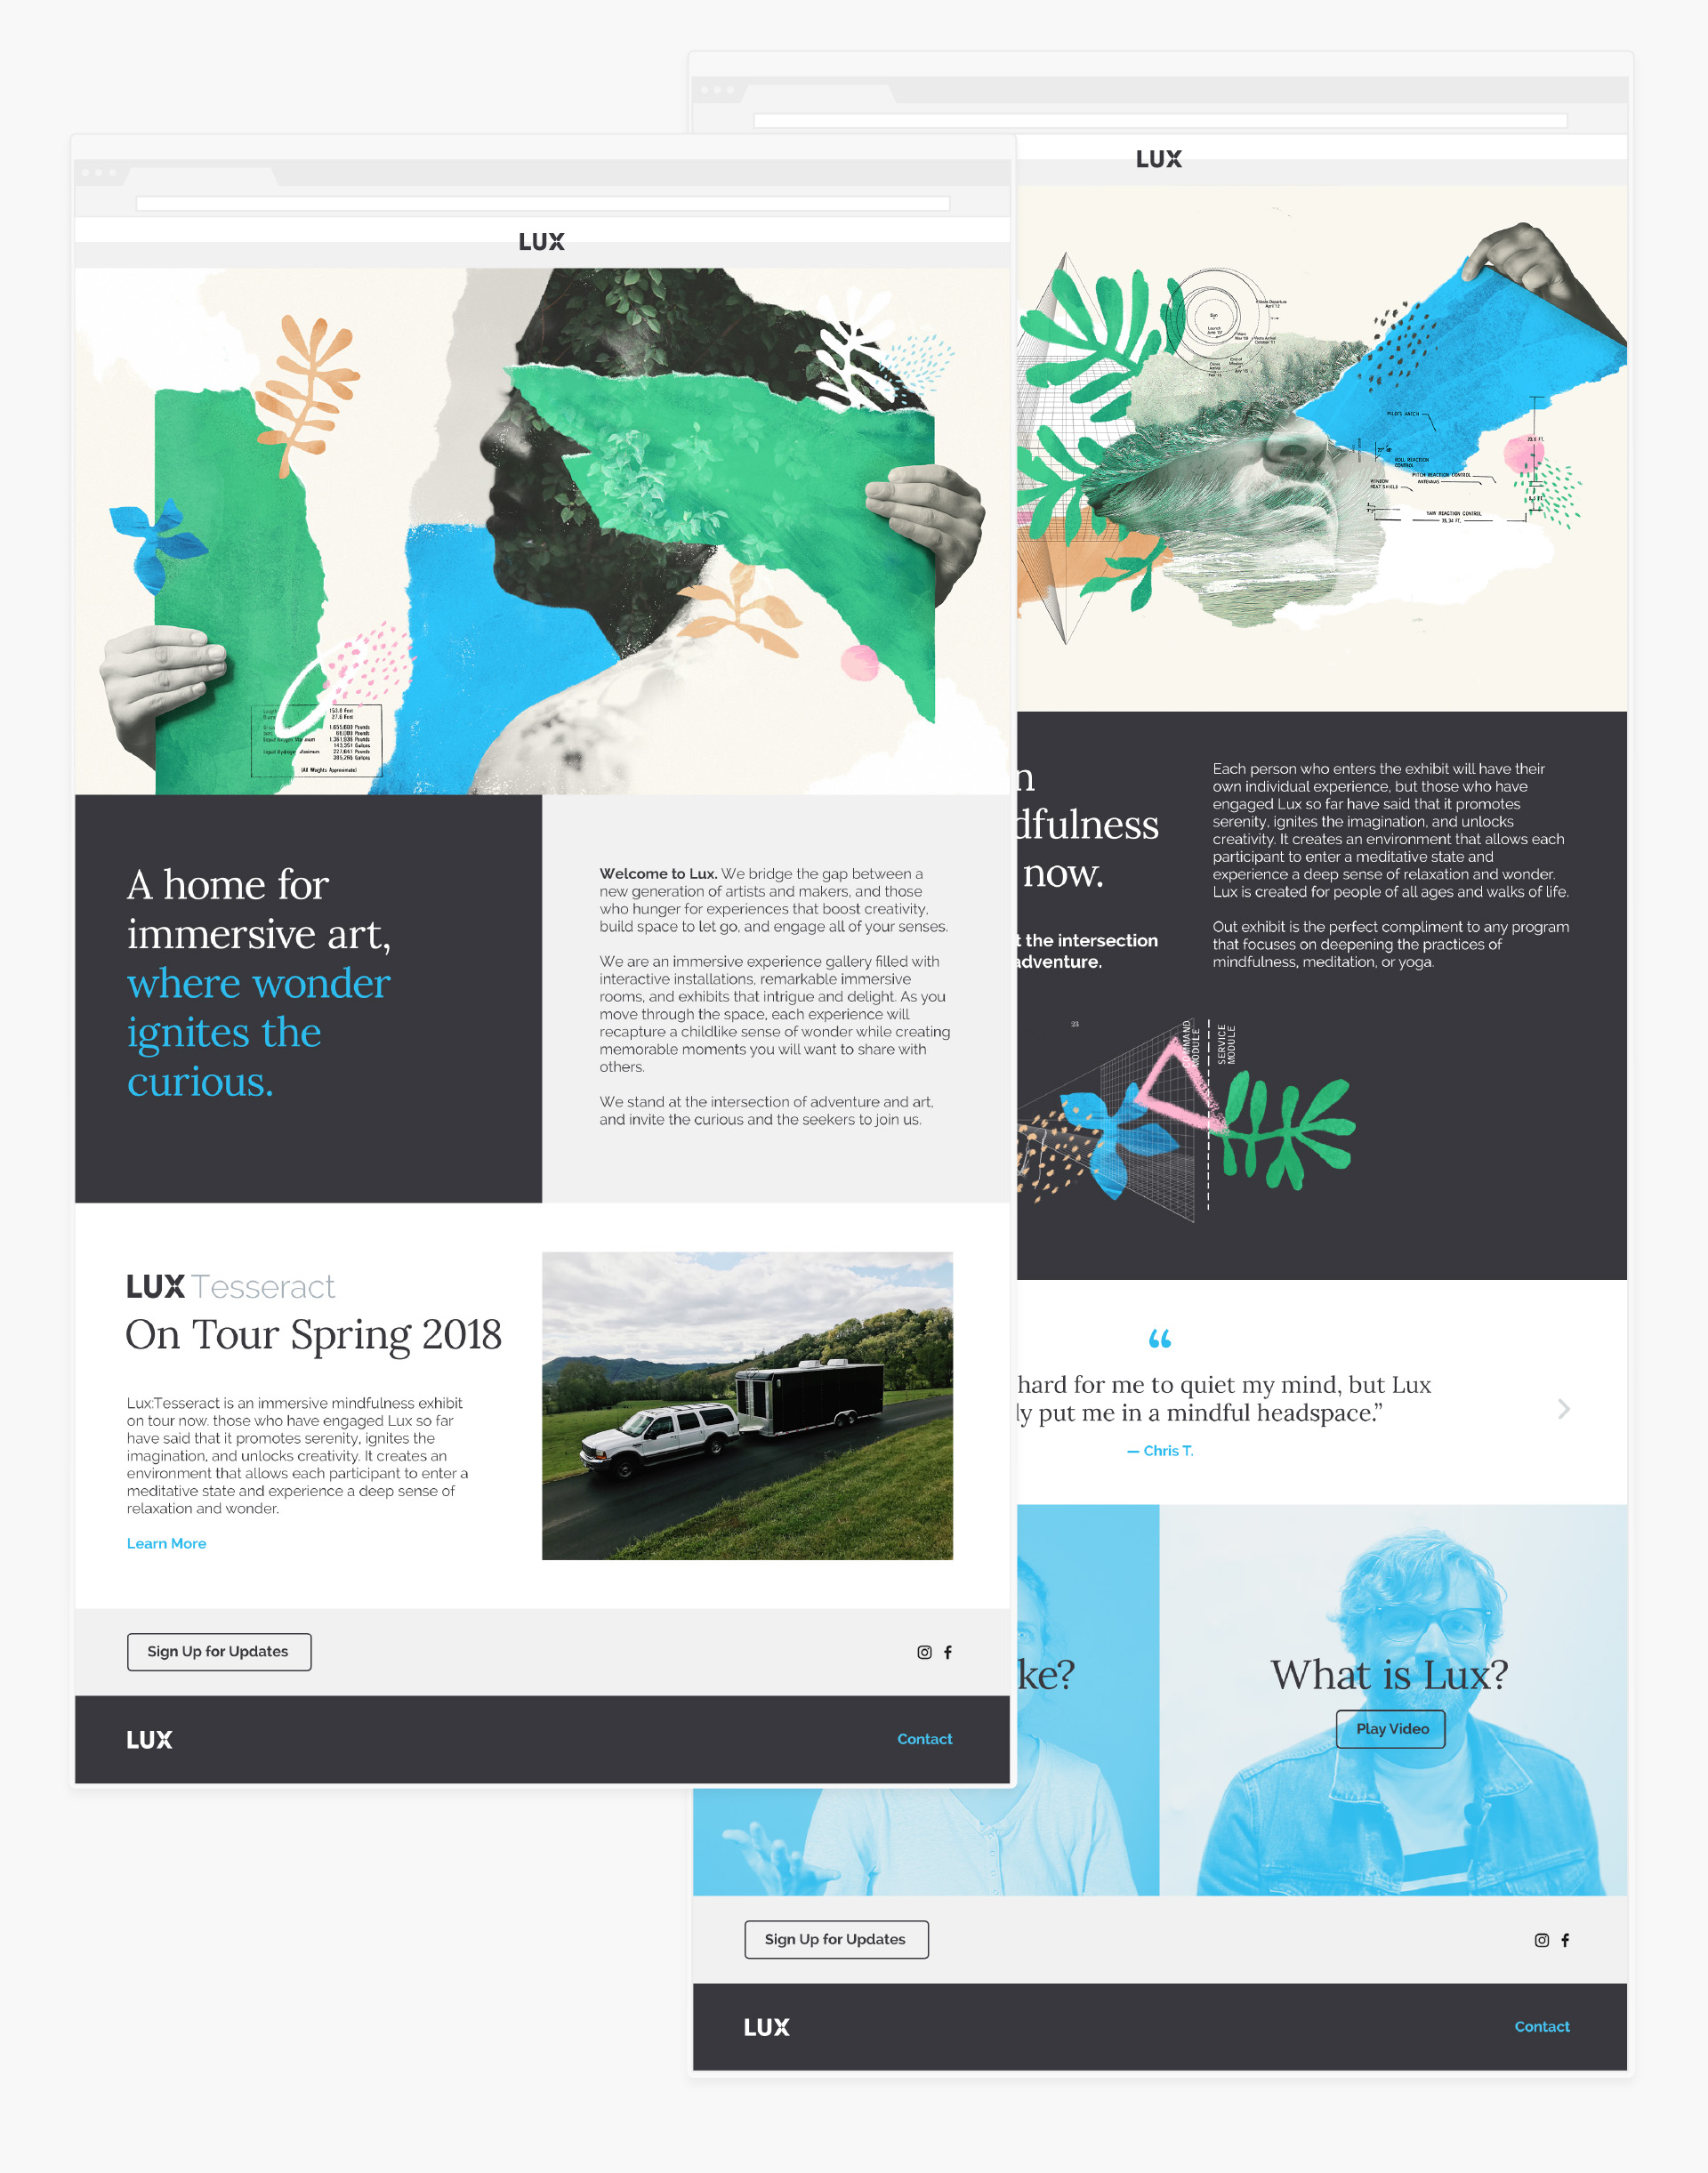 Lux web design features the key art collages and illustrations as well the brand architecture and core messaging framework and narrative copywriting.